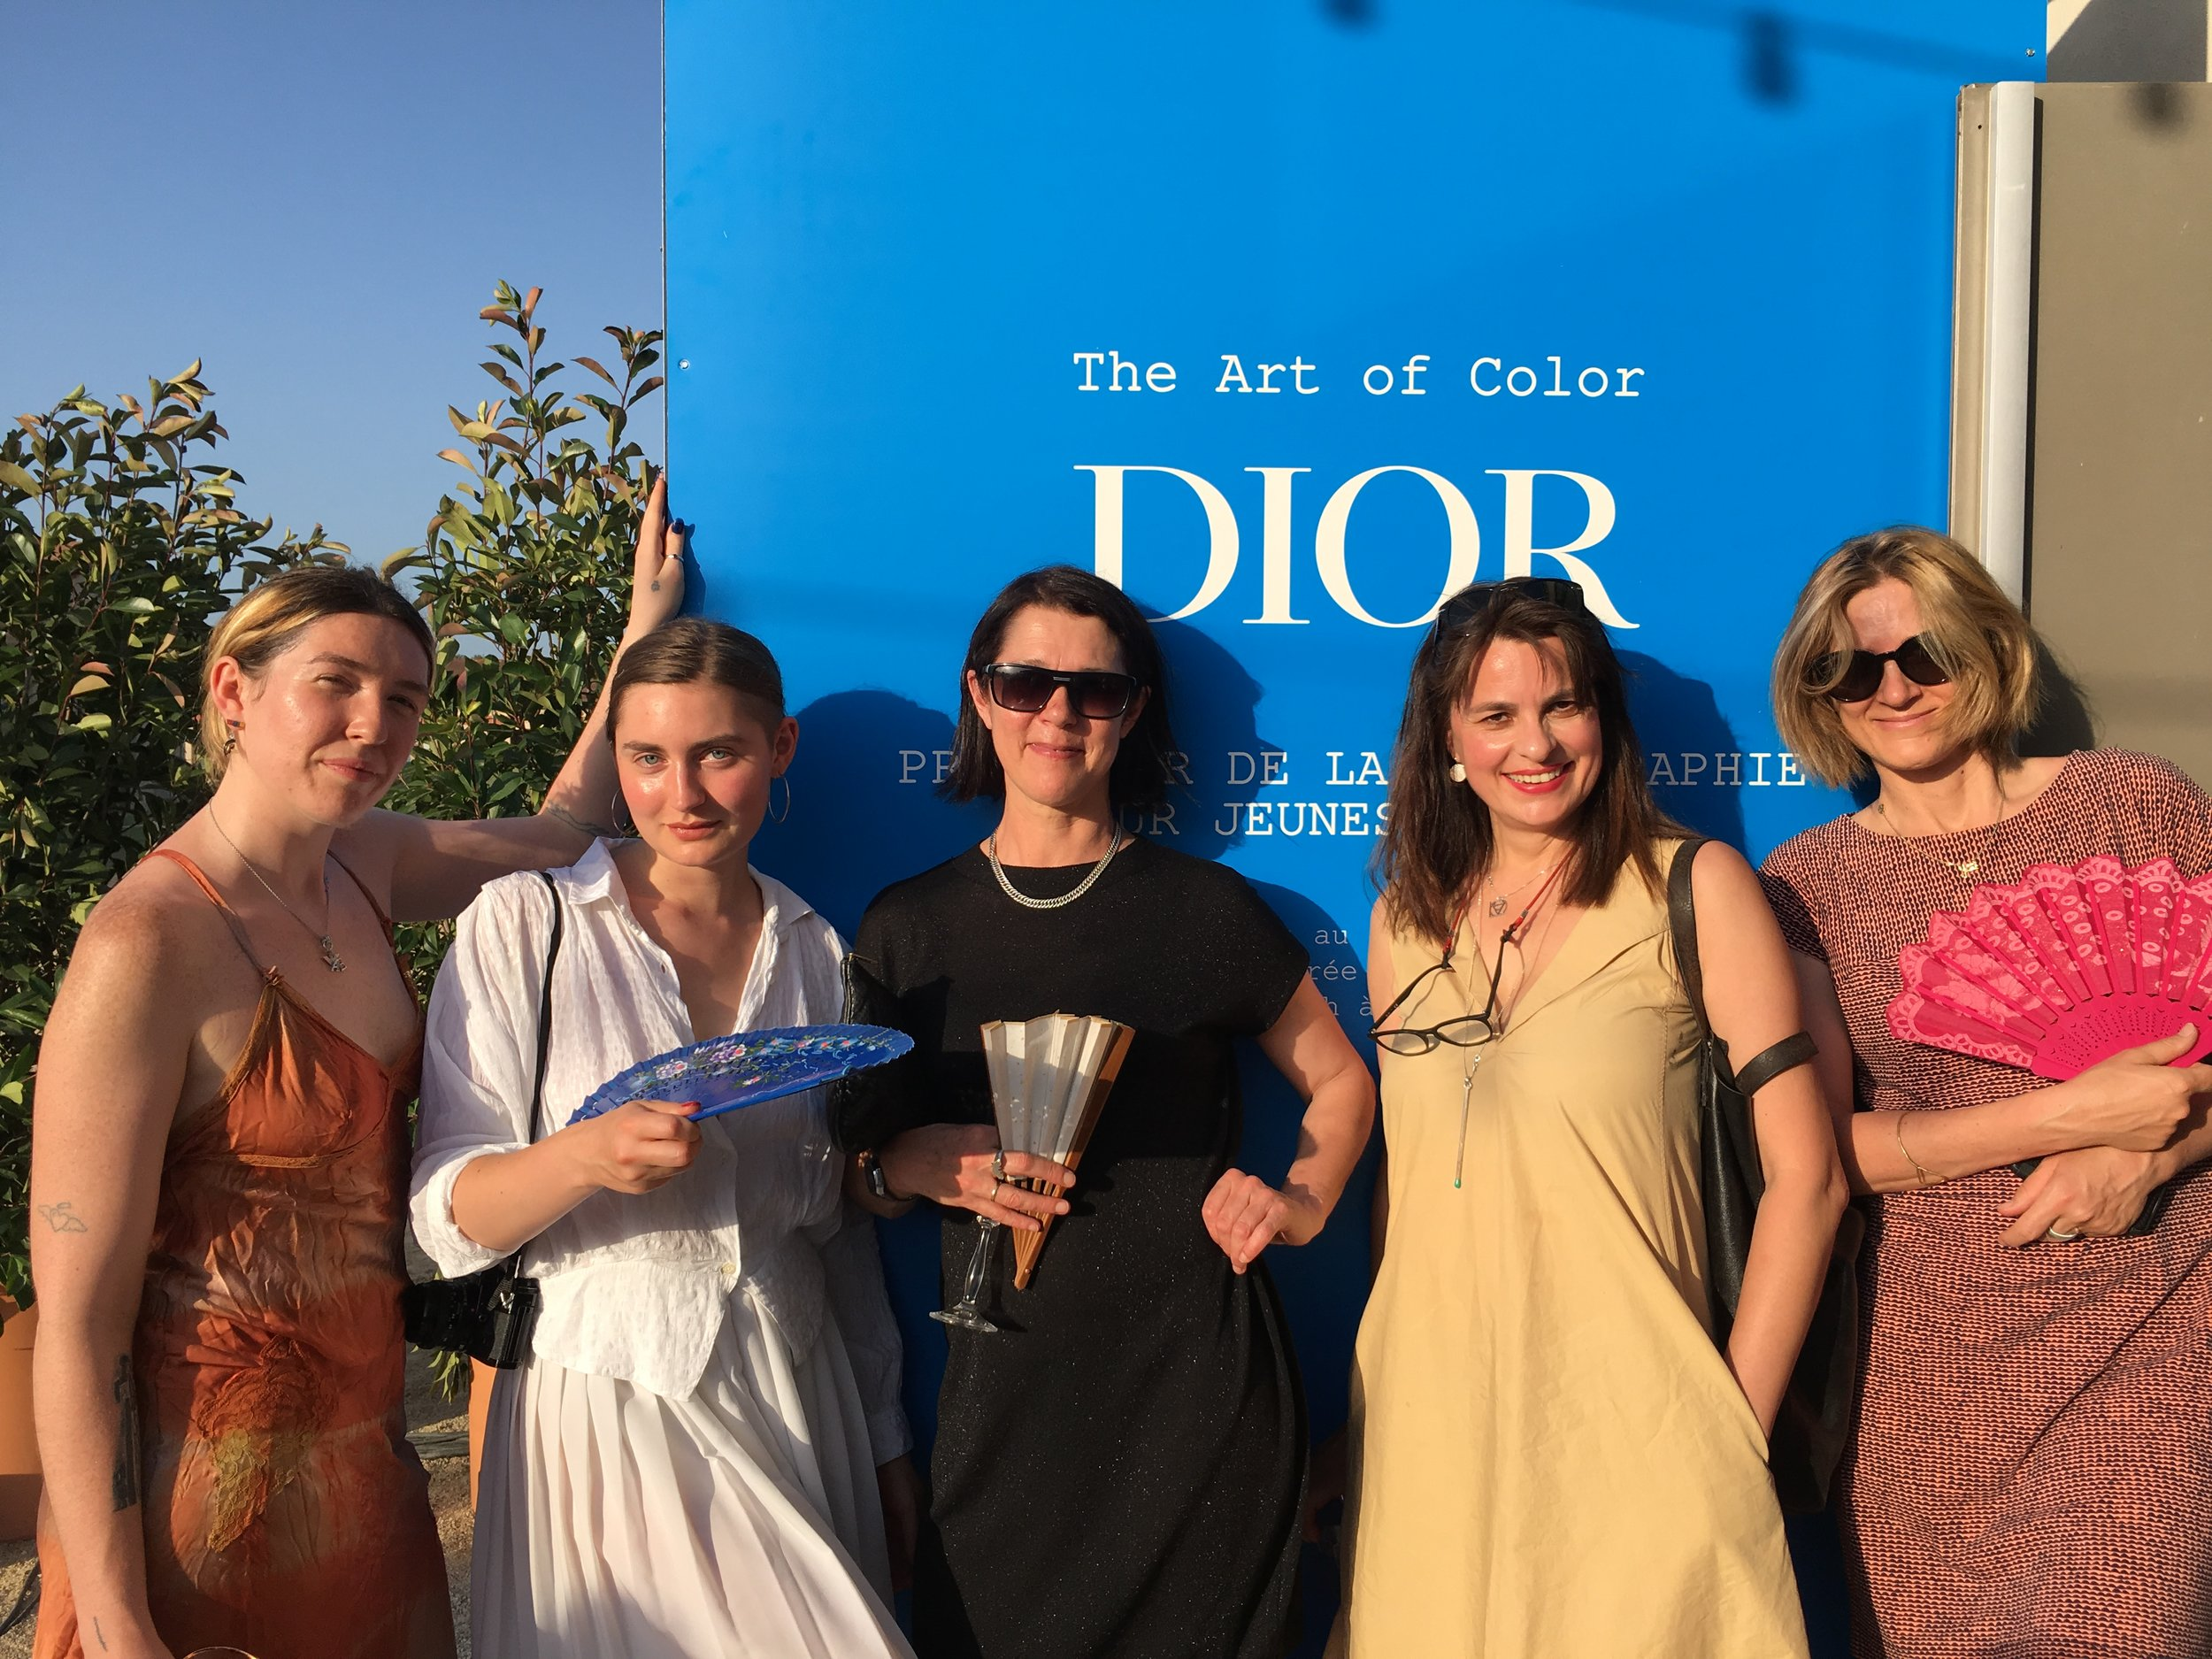 Meet the Hi-Noon team - Brenna Horrox (director), Ozziline Bill (apprentice), Sarah Jones (guest), Rut Blees Luxemburg (director) and Sophy Rickett (director) celebrated the launch of Hi-Noon at Les Rencontres d'Arles 2019.Hi-Noon is a time, a place and an urgency, coupled with conviviality, and a hint of the flamboyant. It is a time of reckoning, with action as the catalyst of change.Read the full Hi-Noon mission statement here